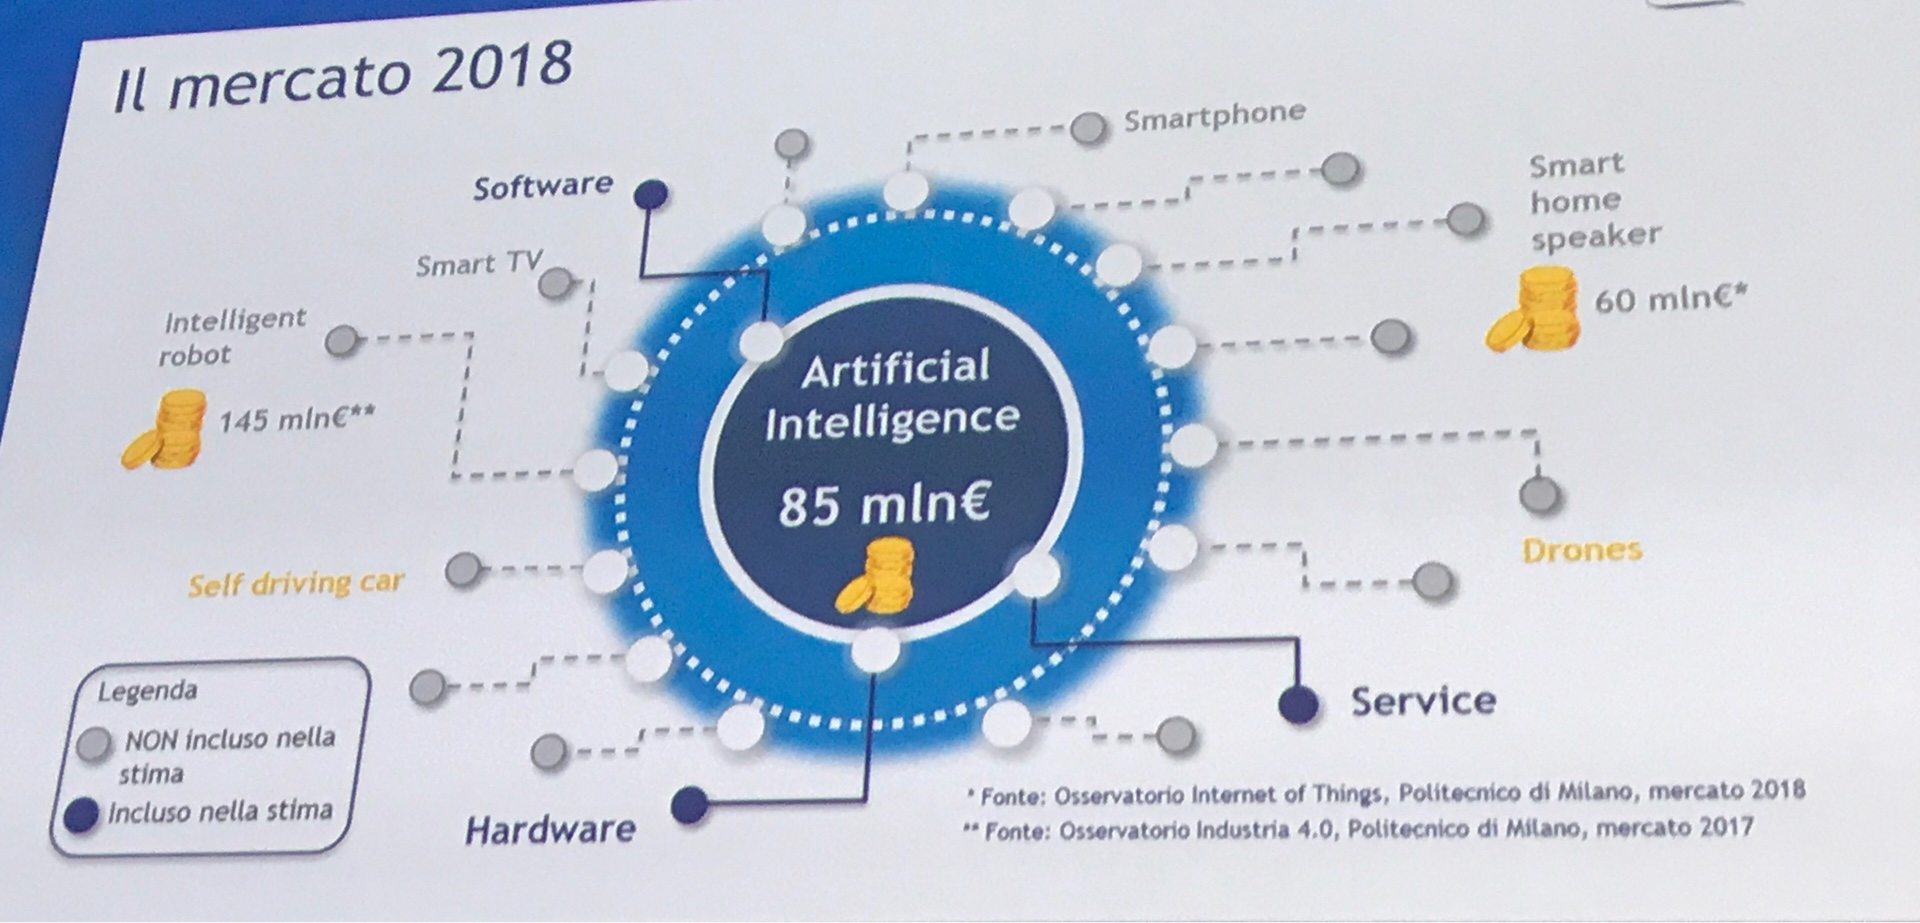 Intelligenza artificiale mercato 2018